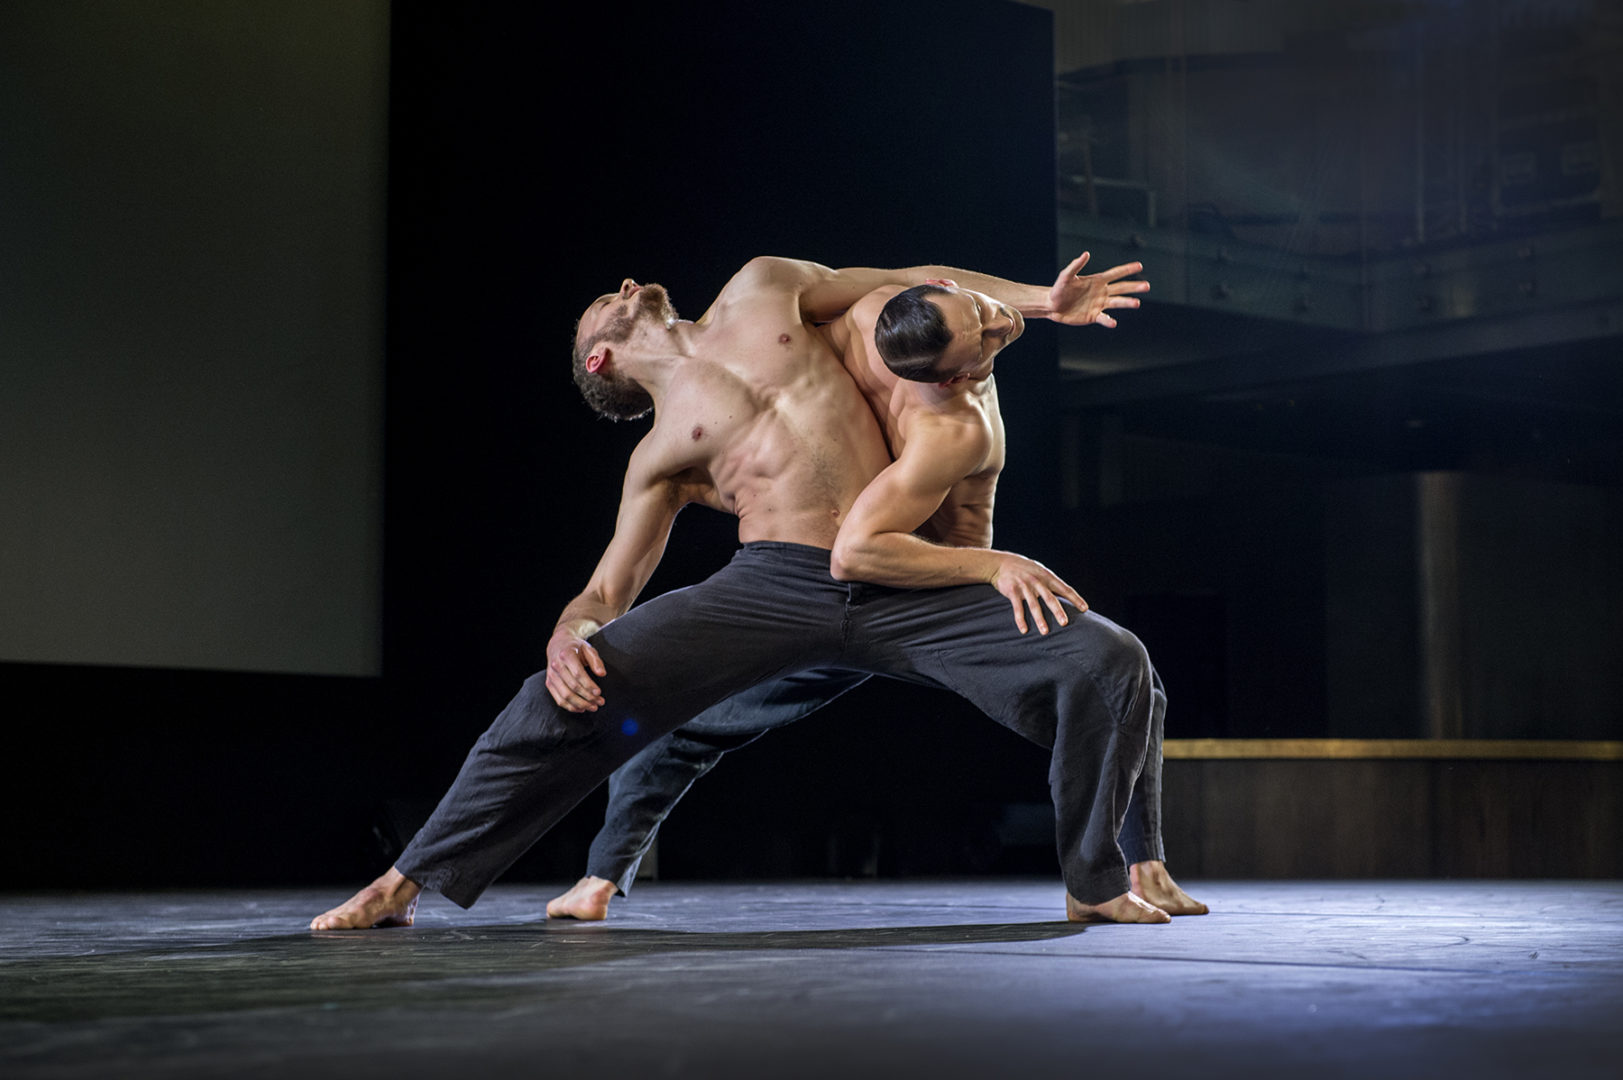 Harry Price and Bradley Cooper of BalletBoyz perform a moving and powerful piece from their show Us/Them.